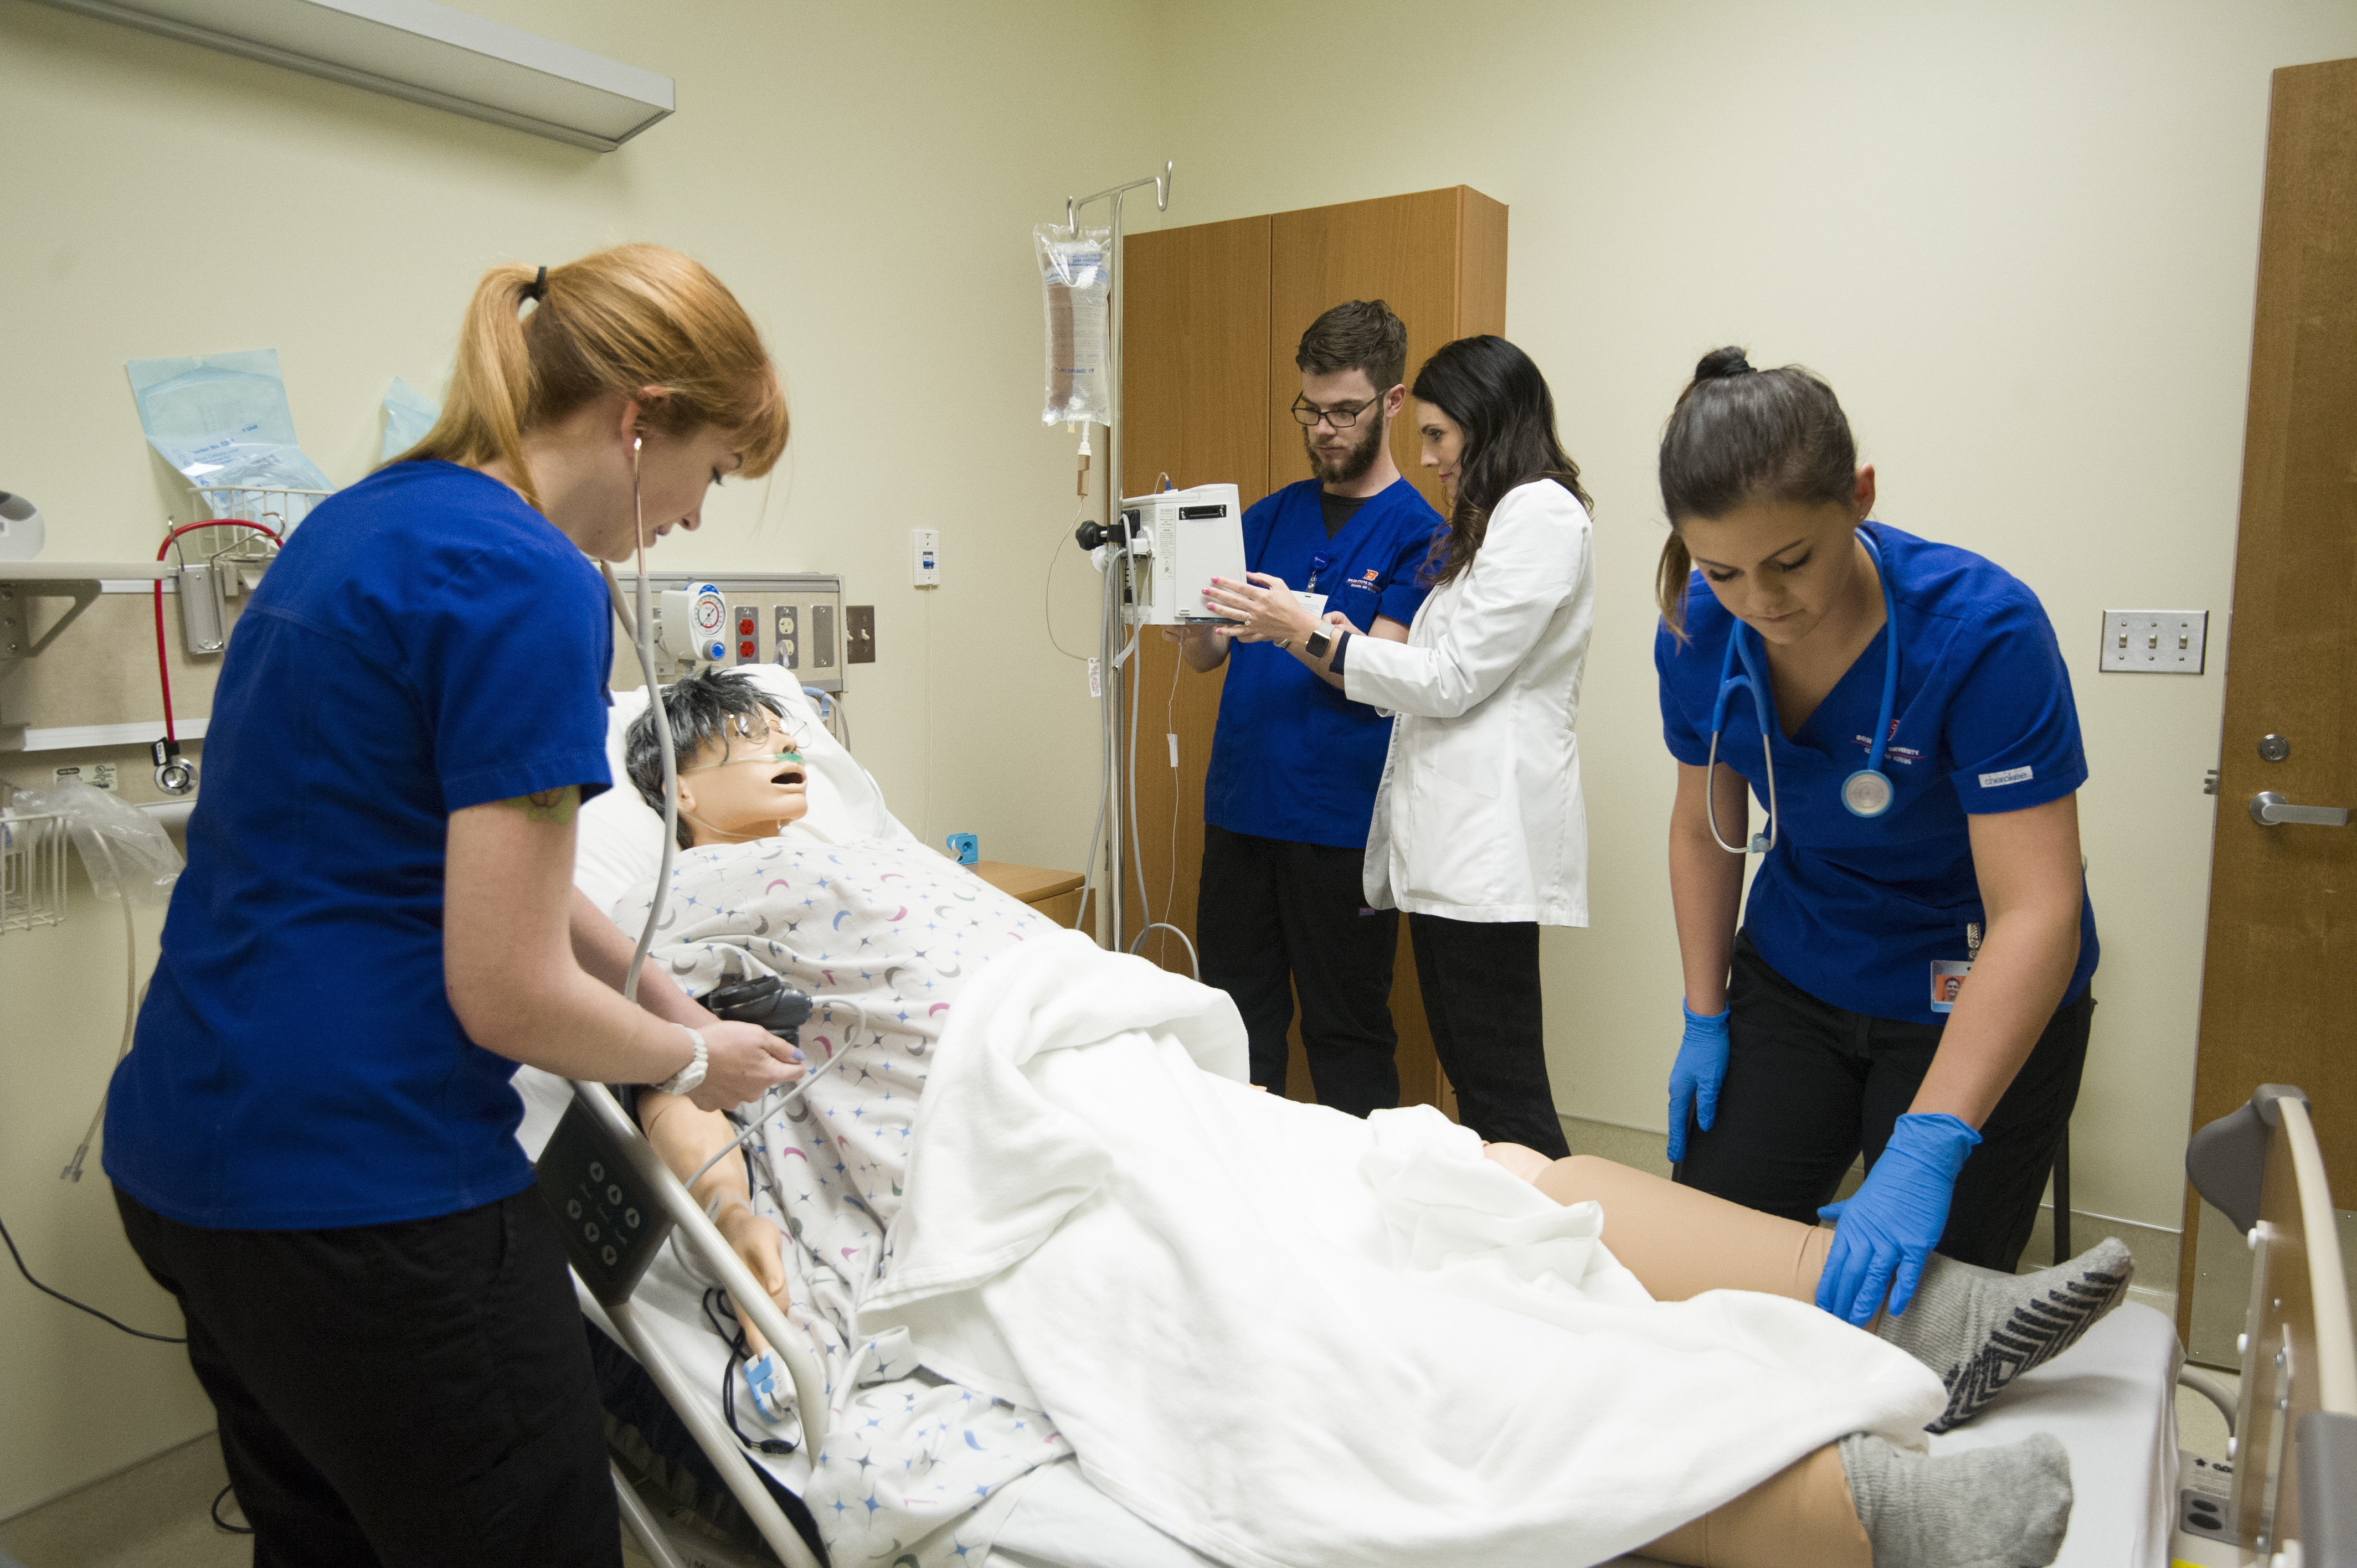 School of Nursing, Simulation Center, Classroom, Allison Corona photo.